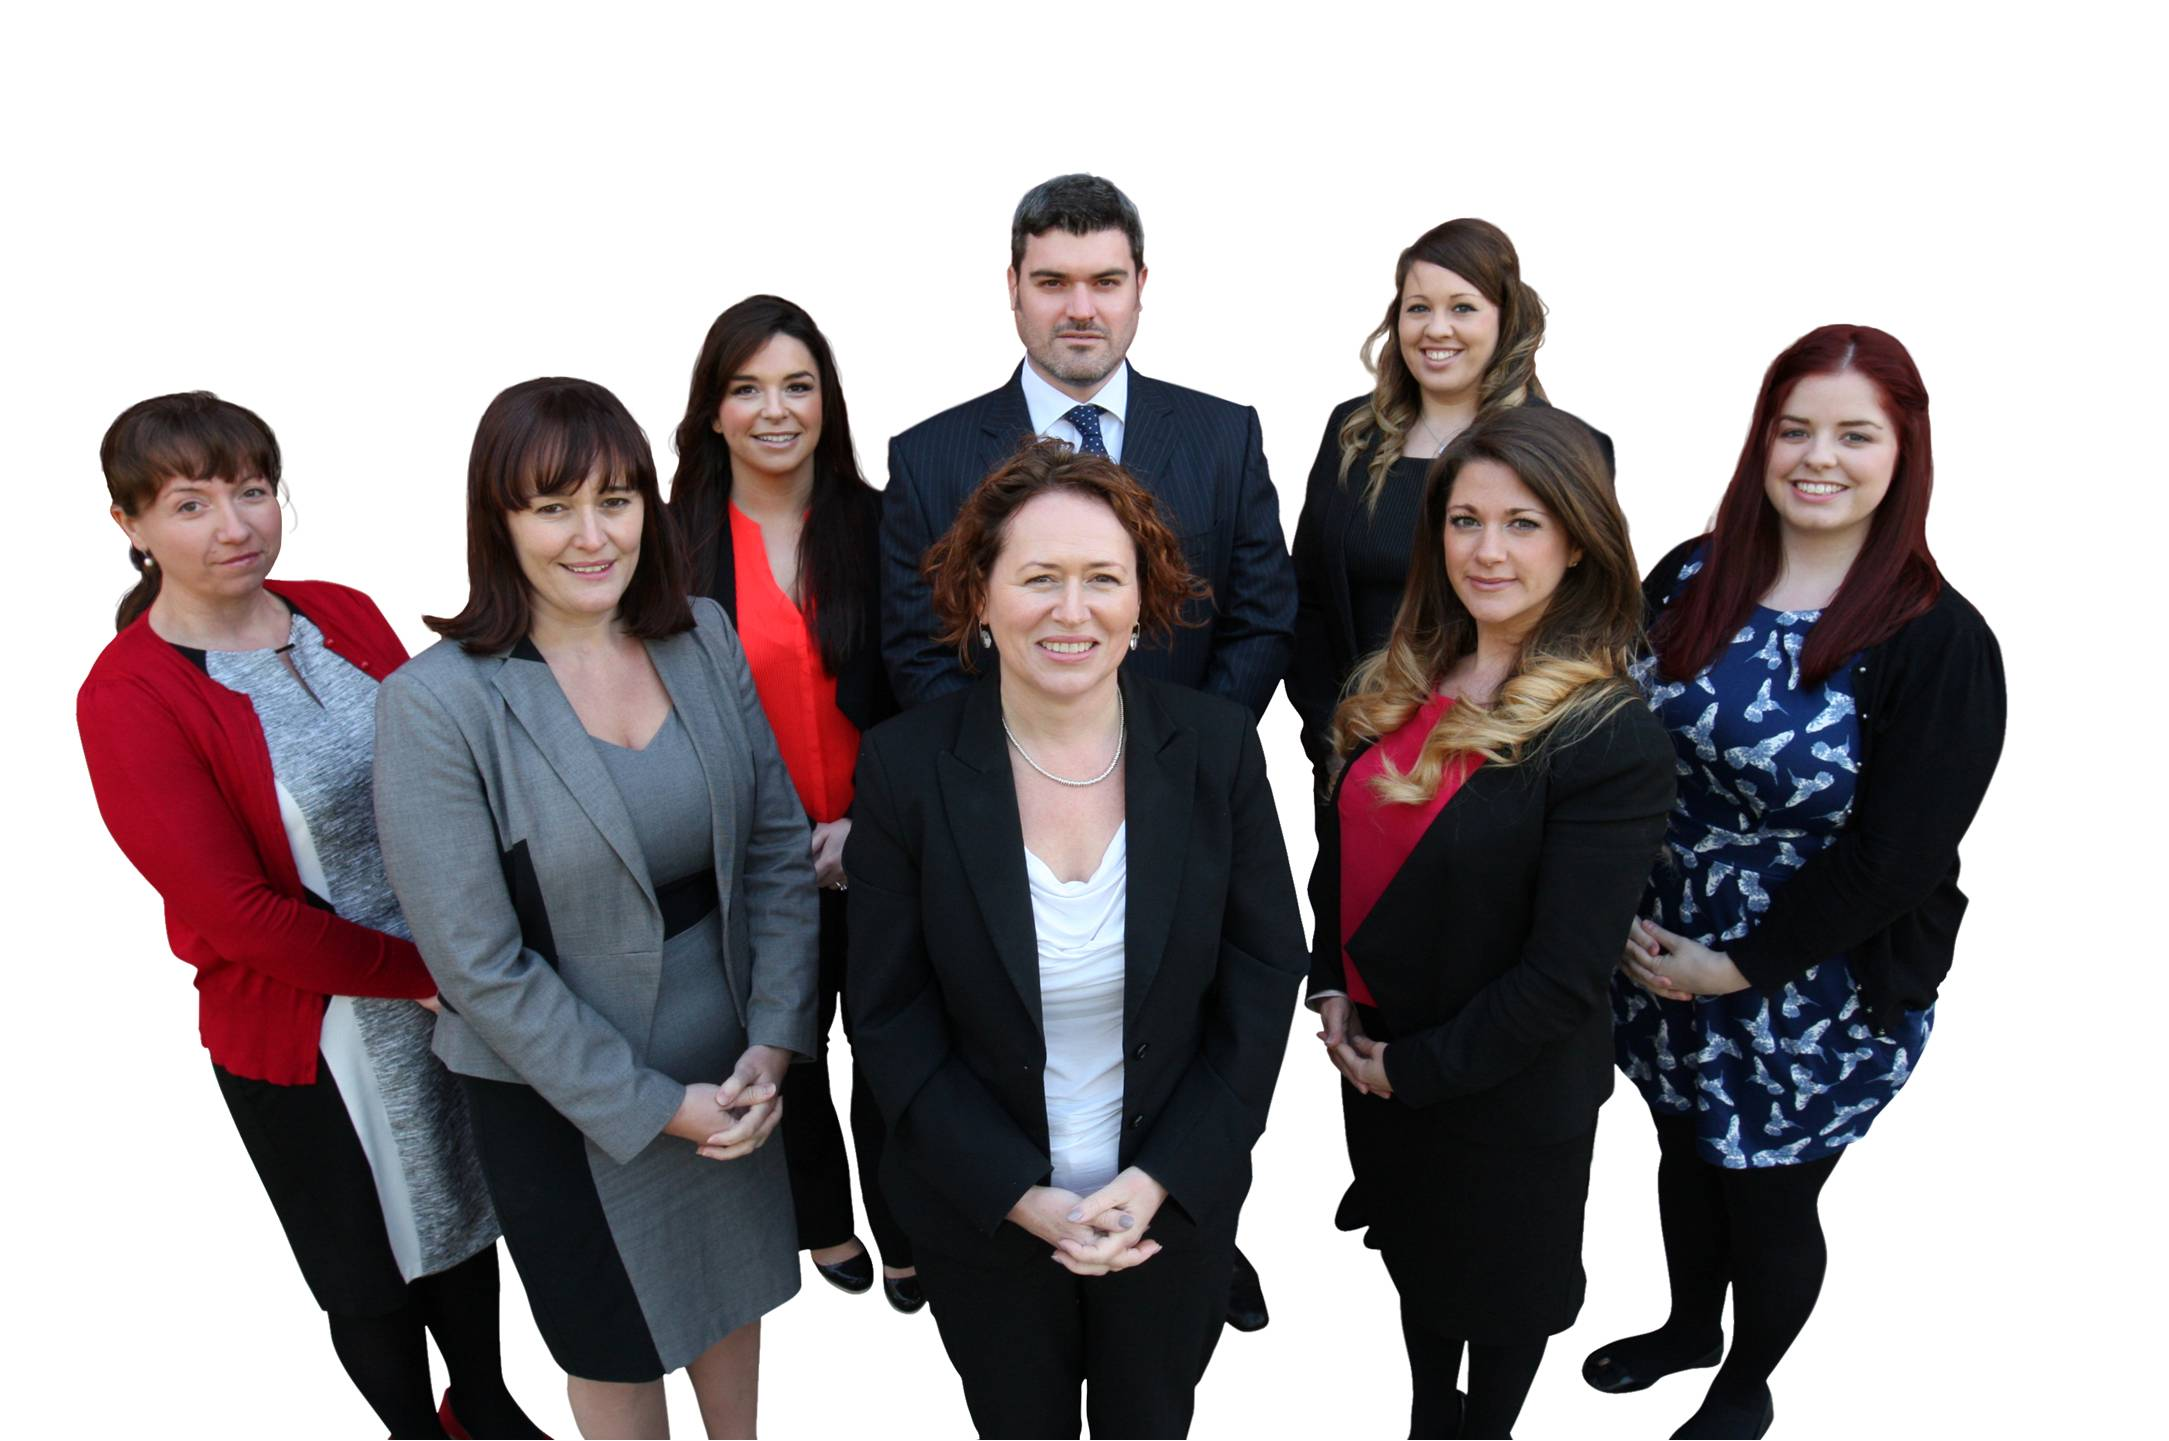 Our ectopic pregnancy expert team. We deal with medical negligence claims arising from ectopic pregnancy.